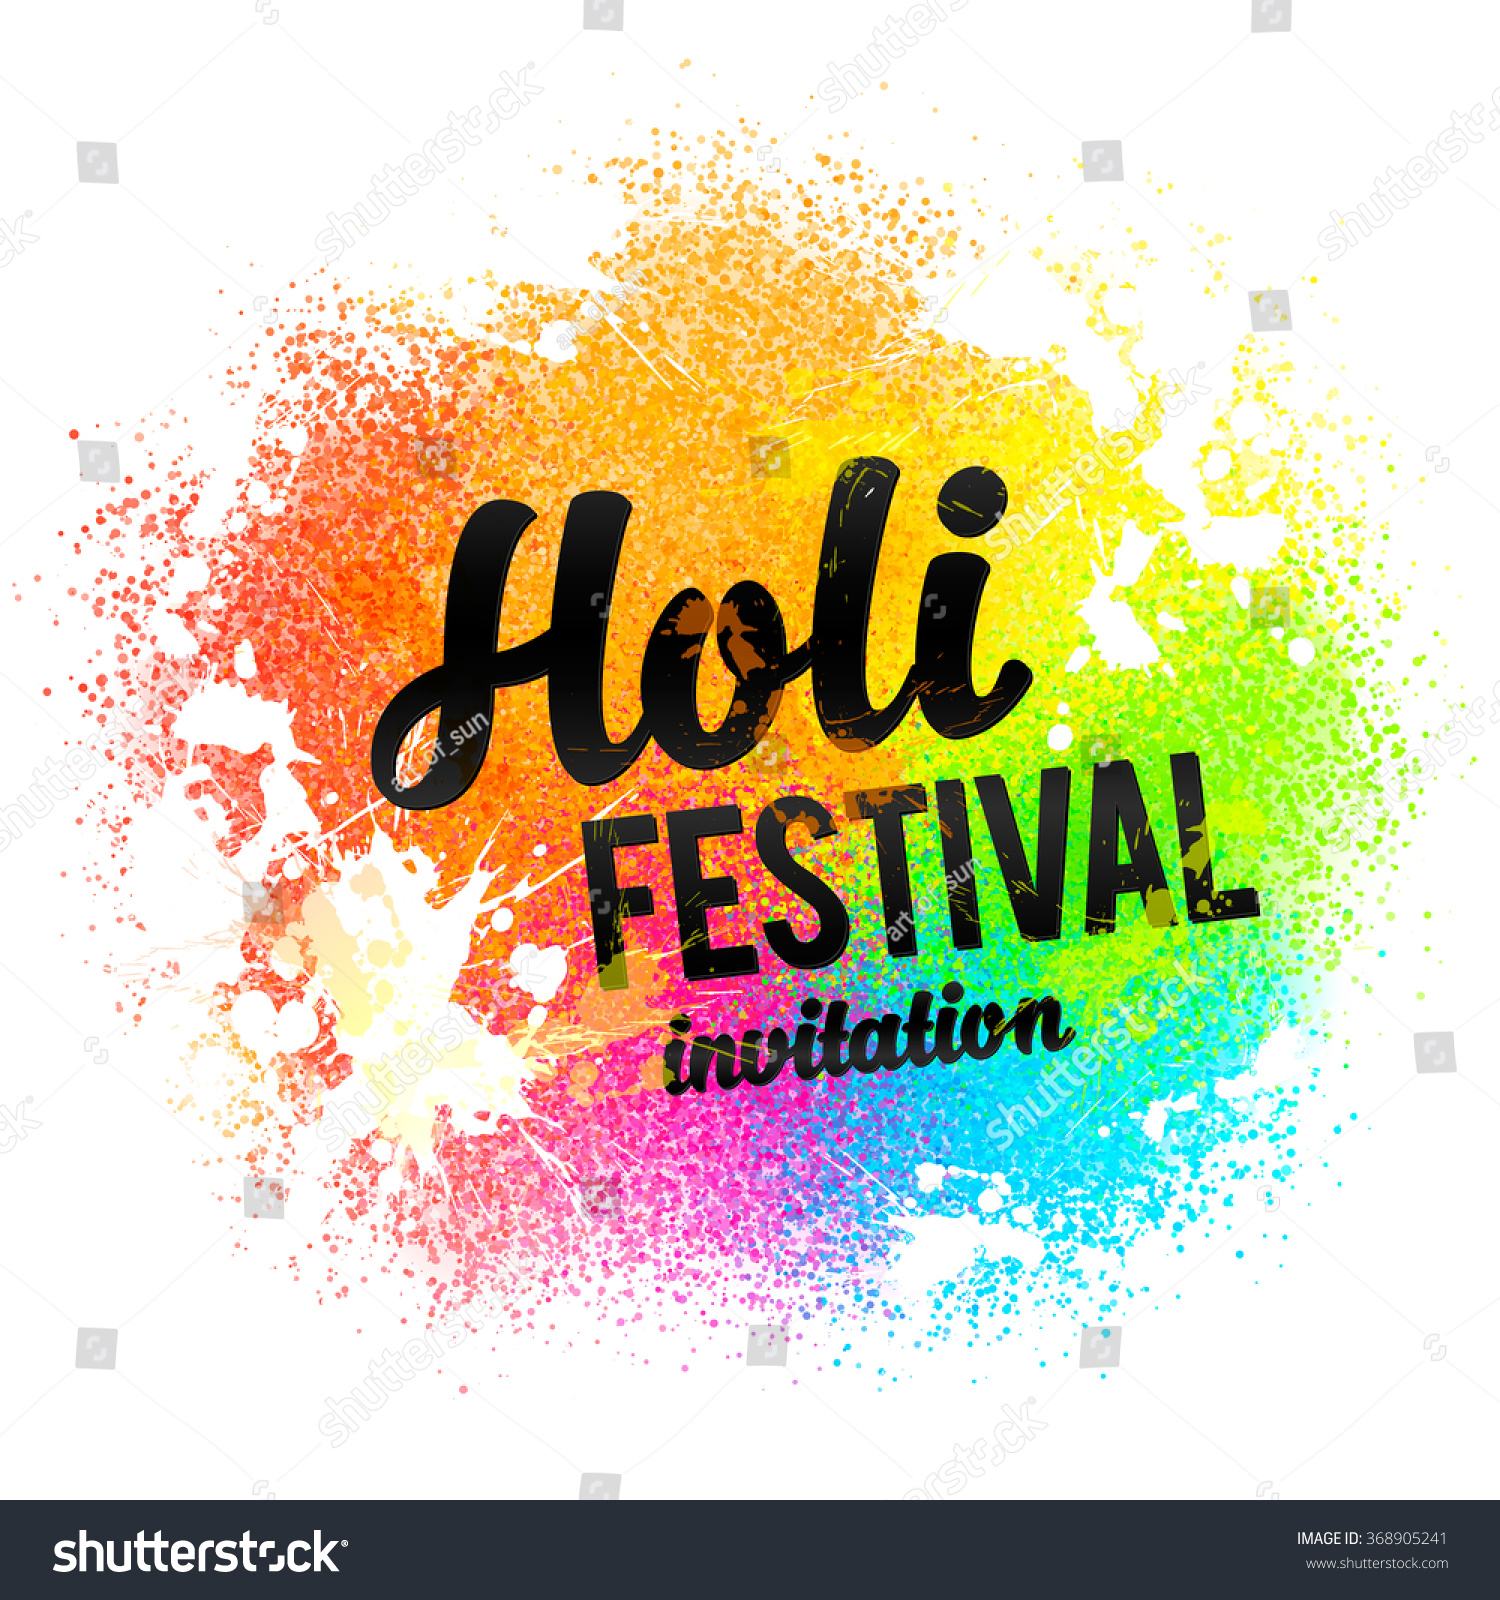 Holi Festival Invitation Vector Black Sign Stock Photo (Photo ...